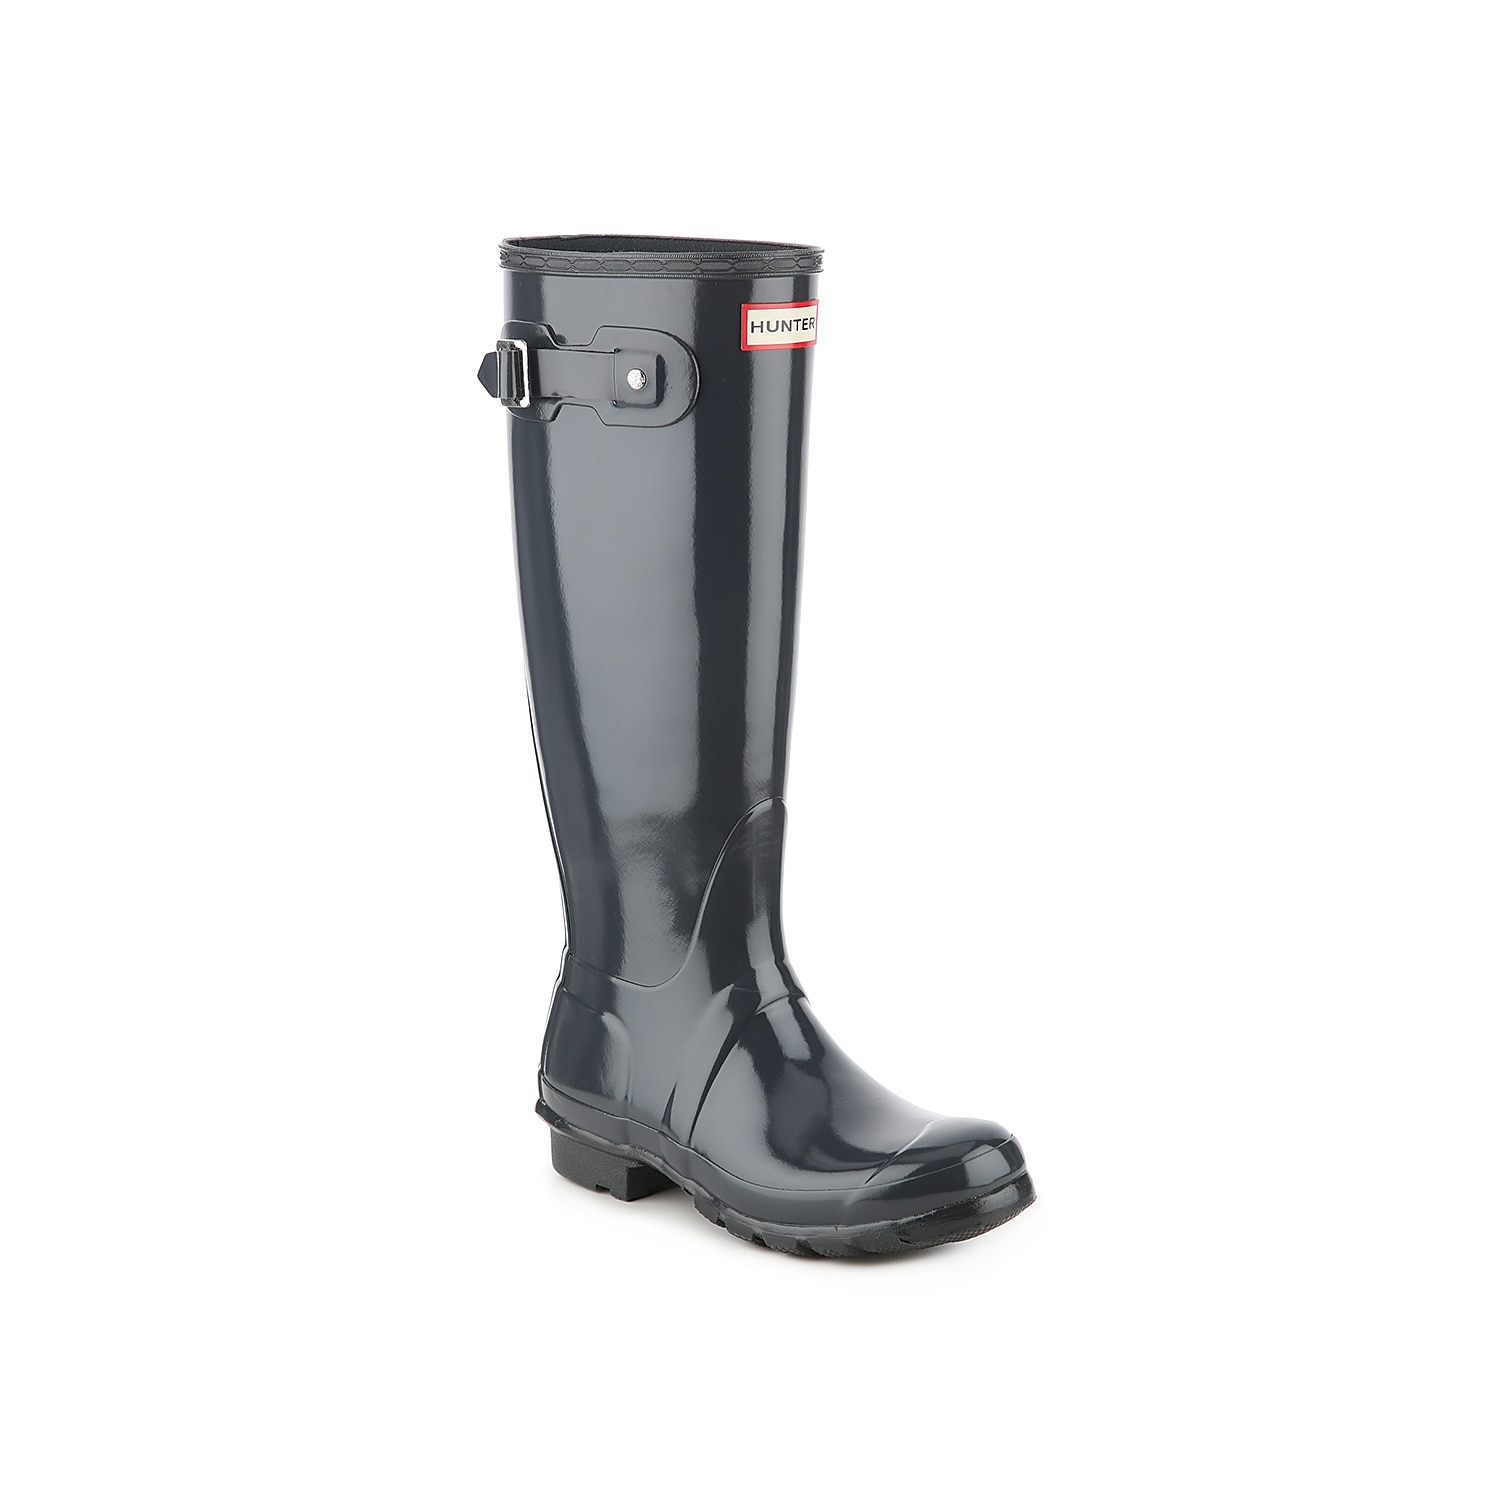 Carefully crafted from 28 separate parts, the Hunter Original Tall Gloss rain boot is assembled by hand to ensure superior quality. Industry-approved waterproofing means that these weather-ready boots will hold up to a wide range of conditions, from pleasant drizzles to cracking thunderstorms. Click here for Boot Measuring Guide.